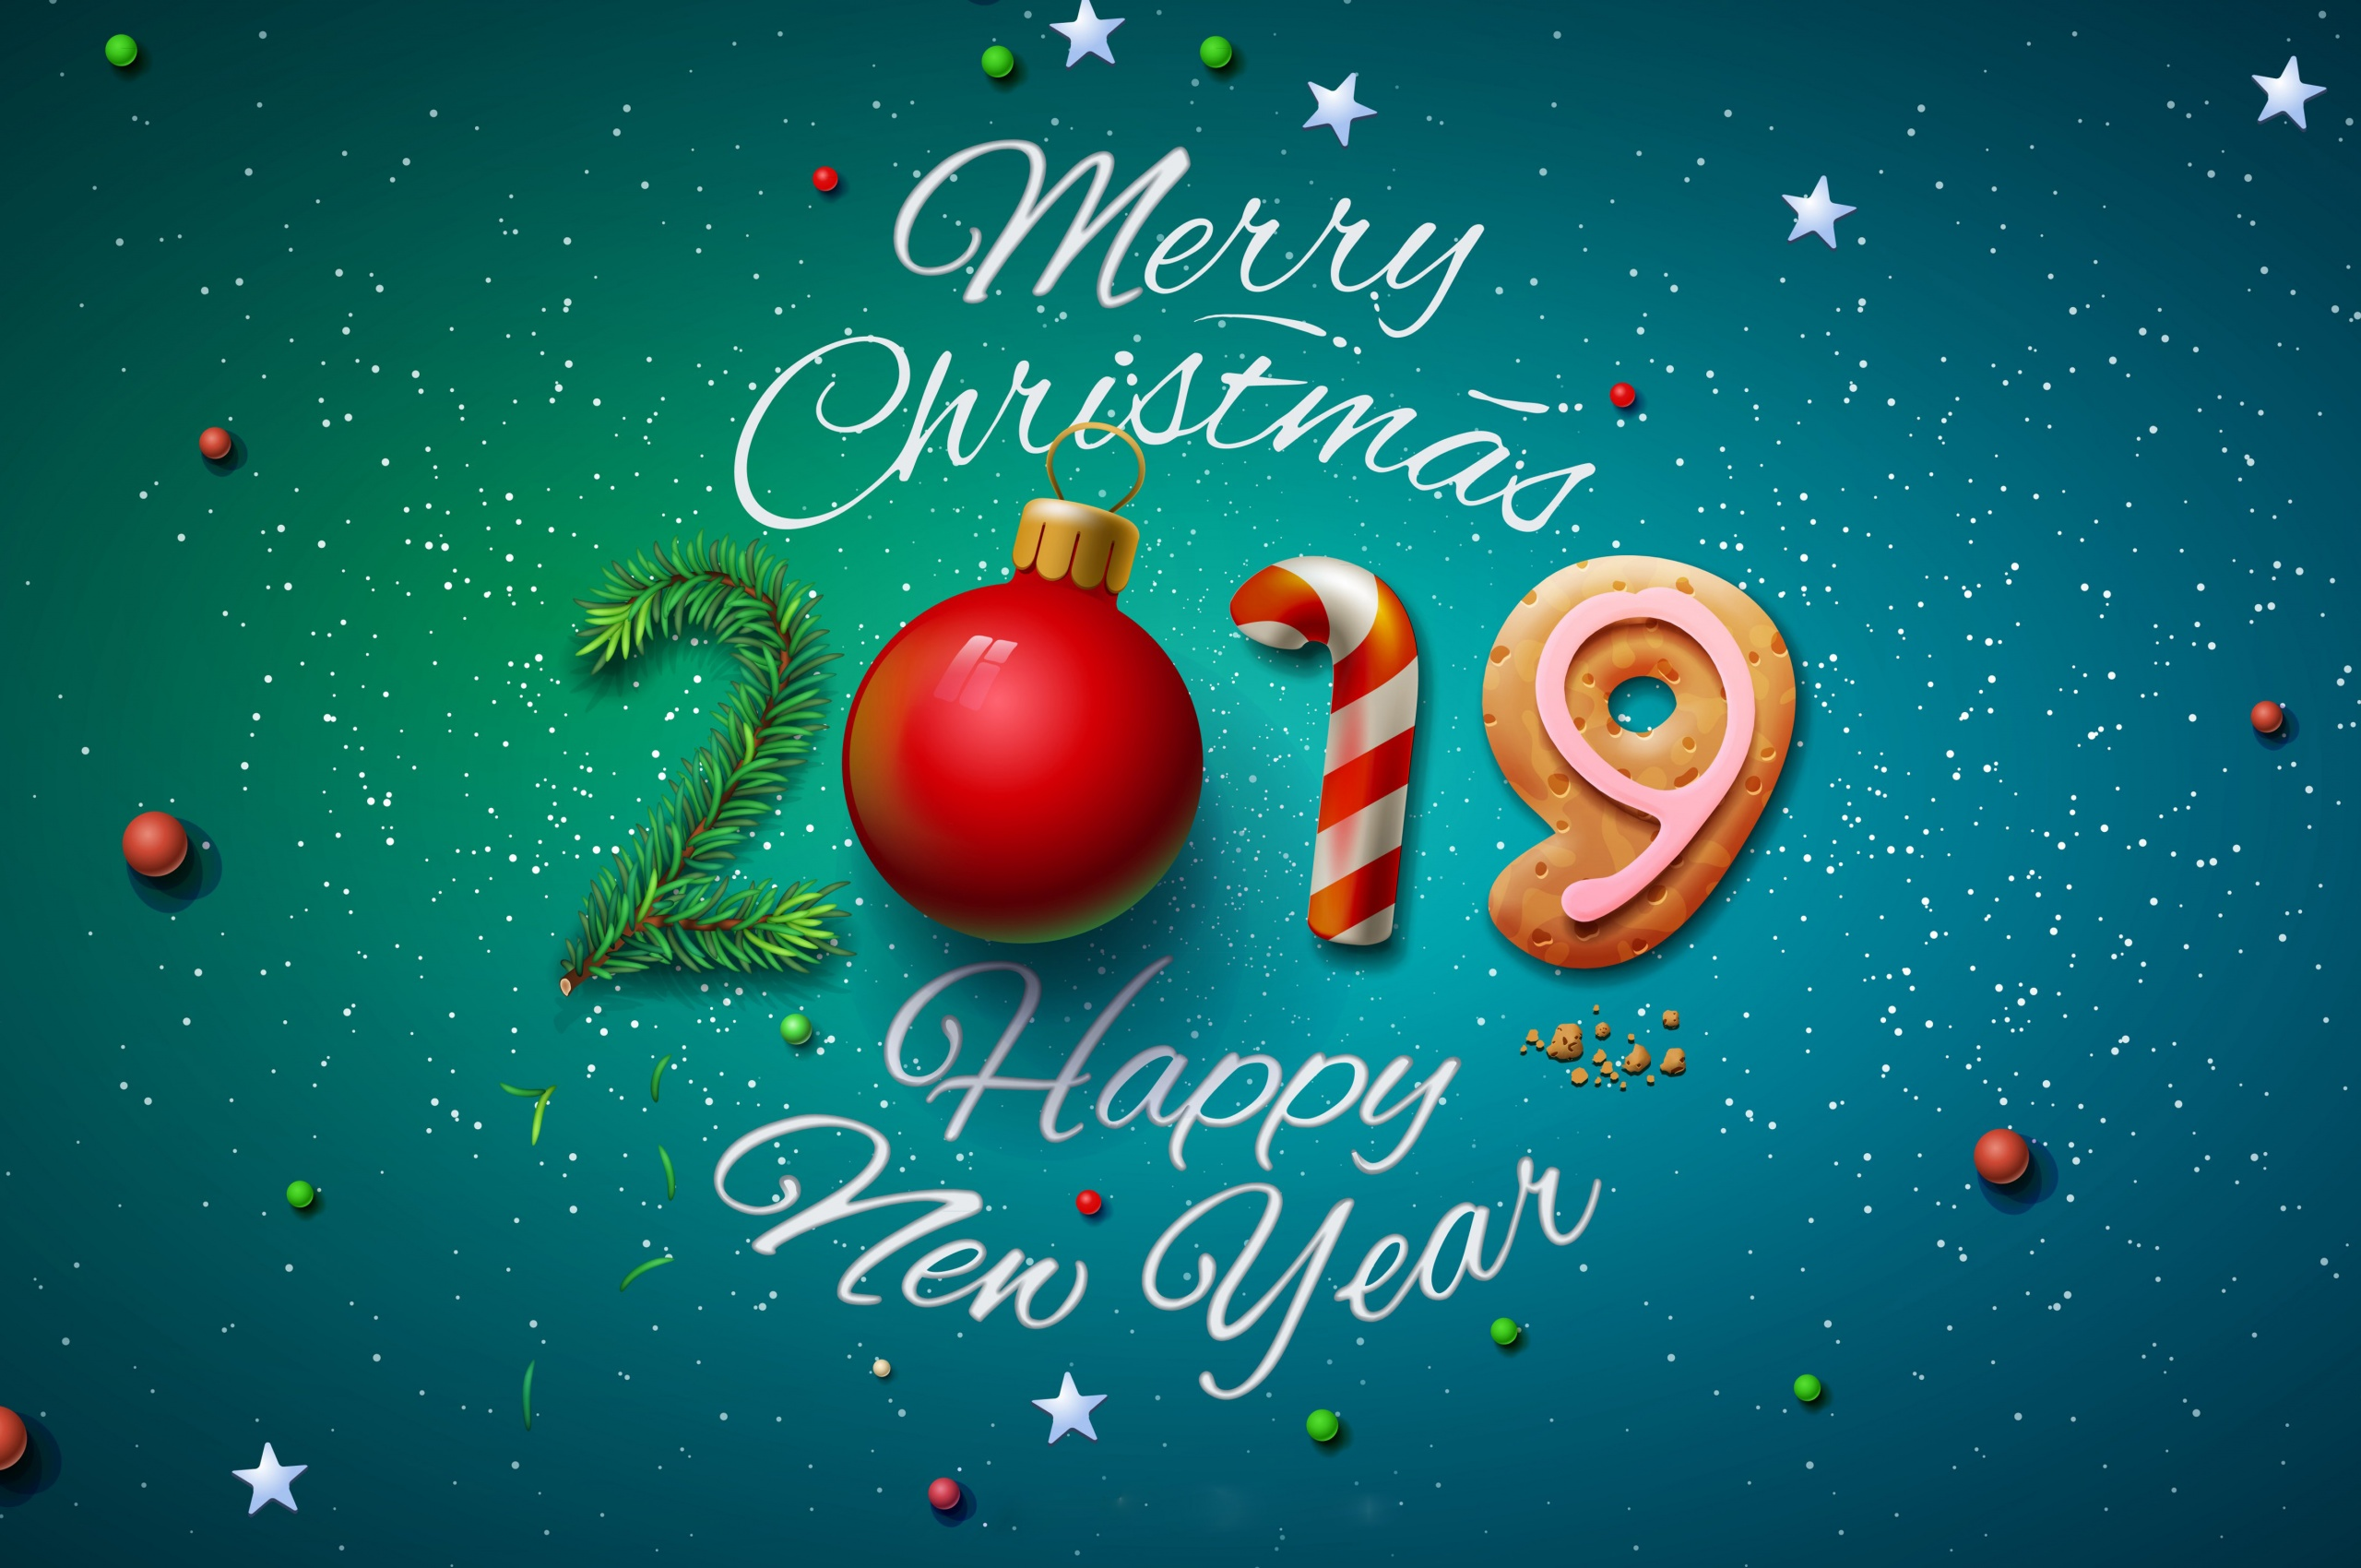 Merry Christmas Happy New Year 2019